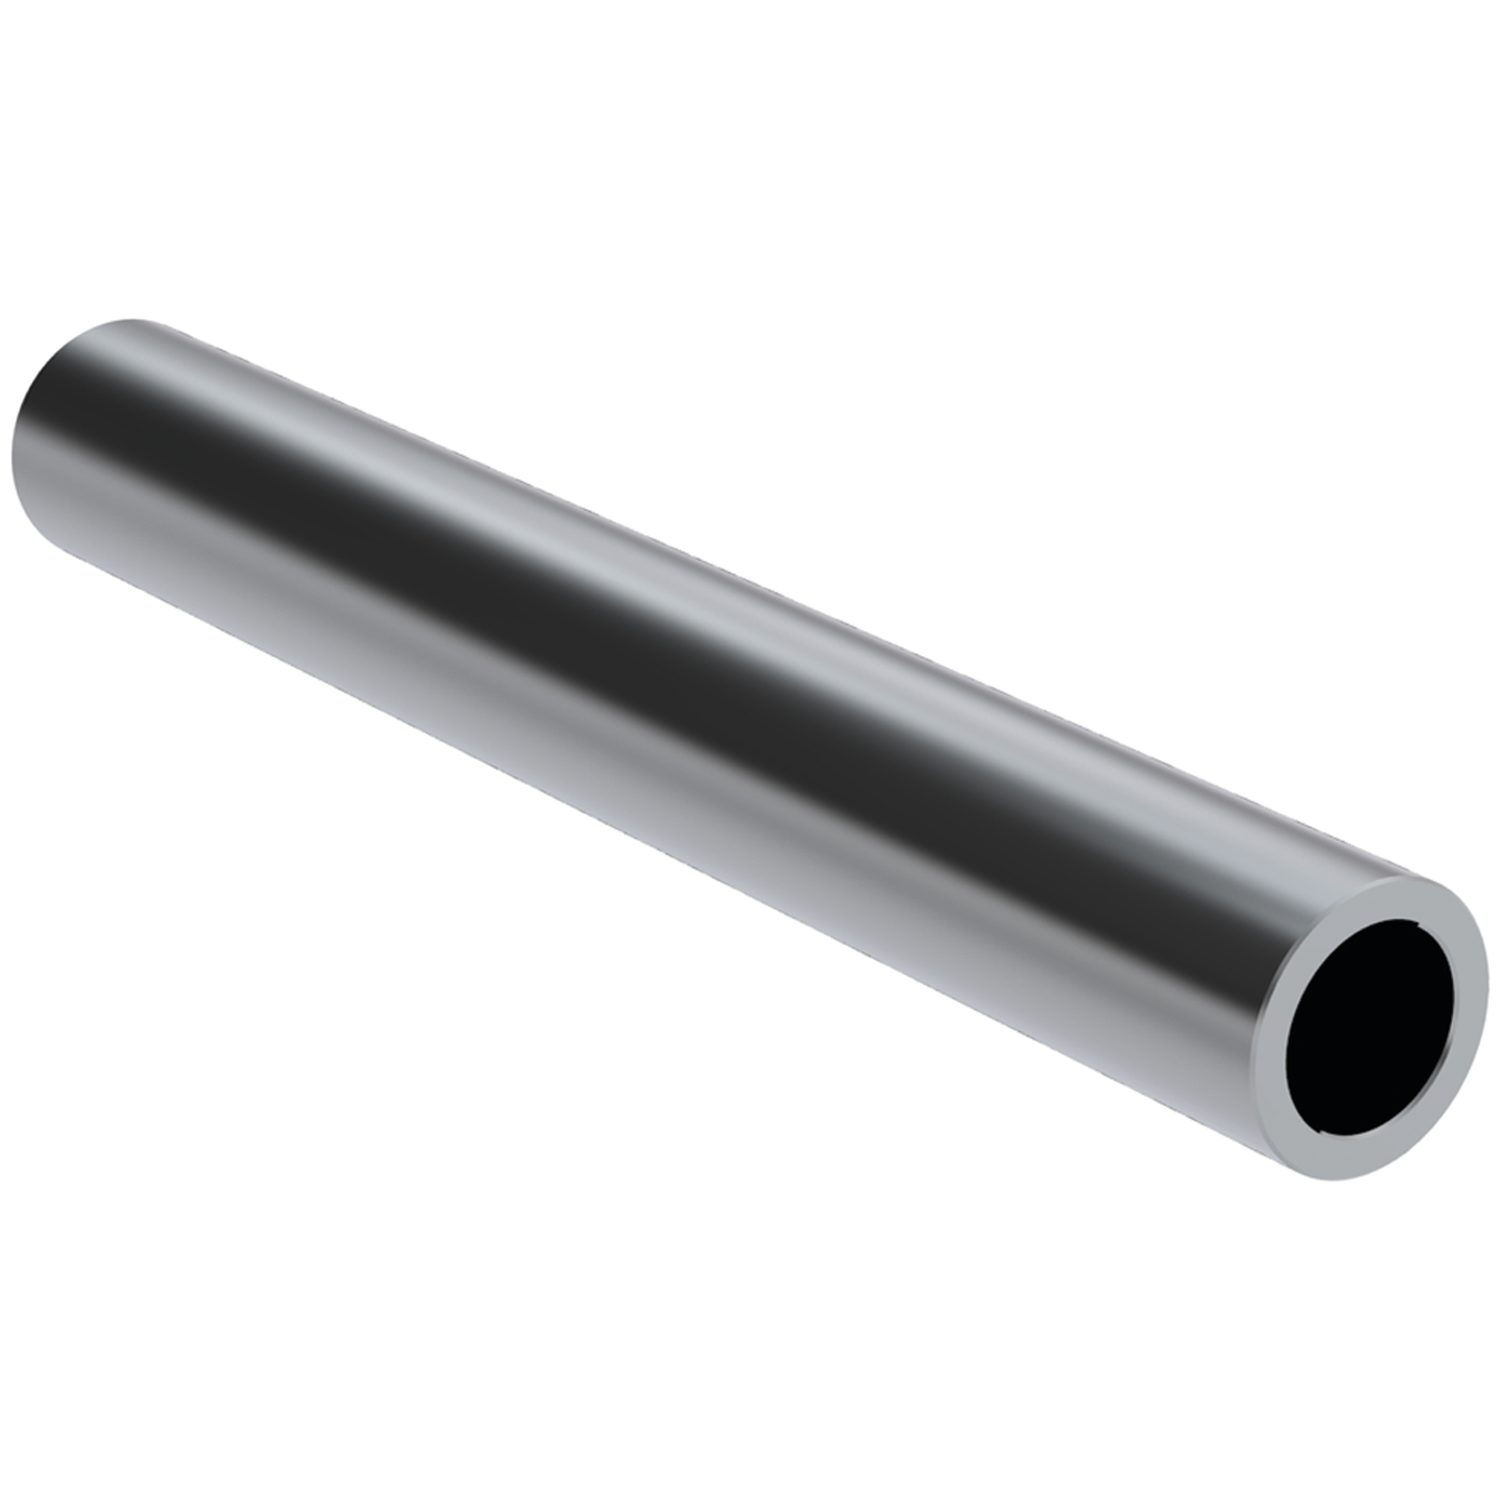 Hollow Steel Linear Shafts